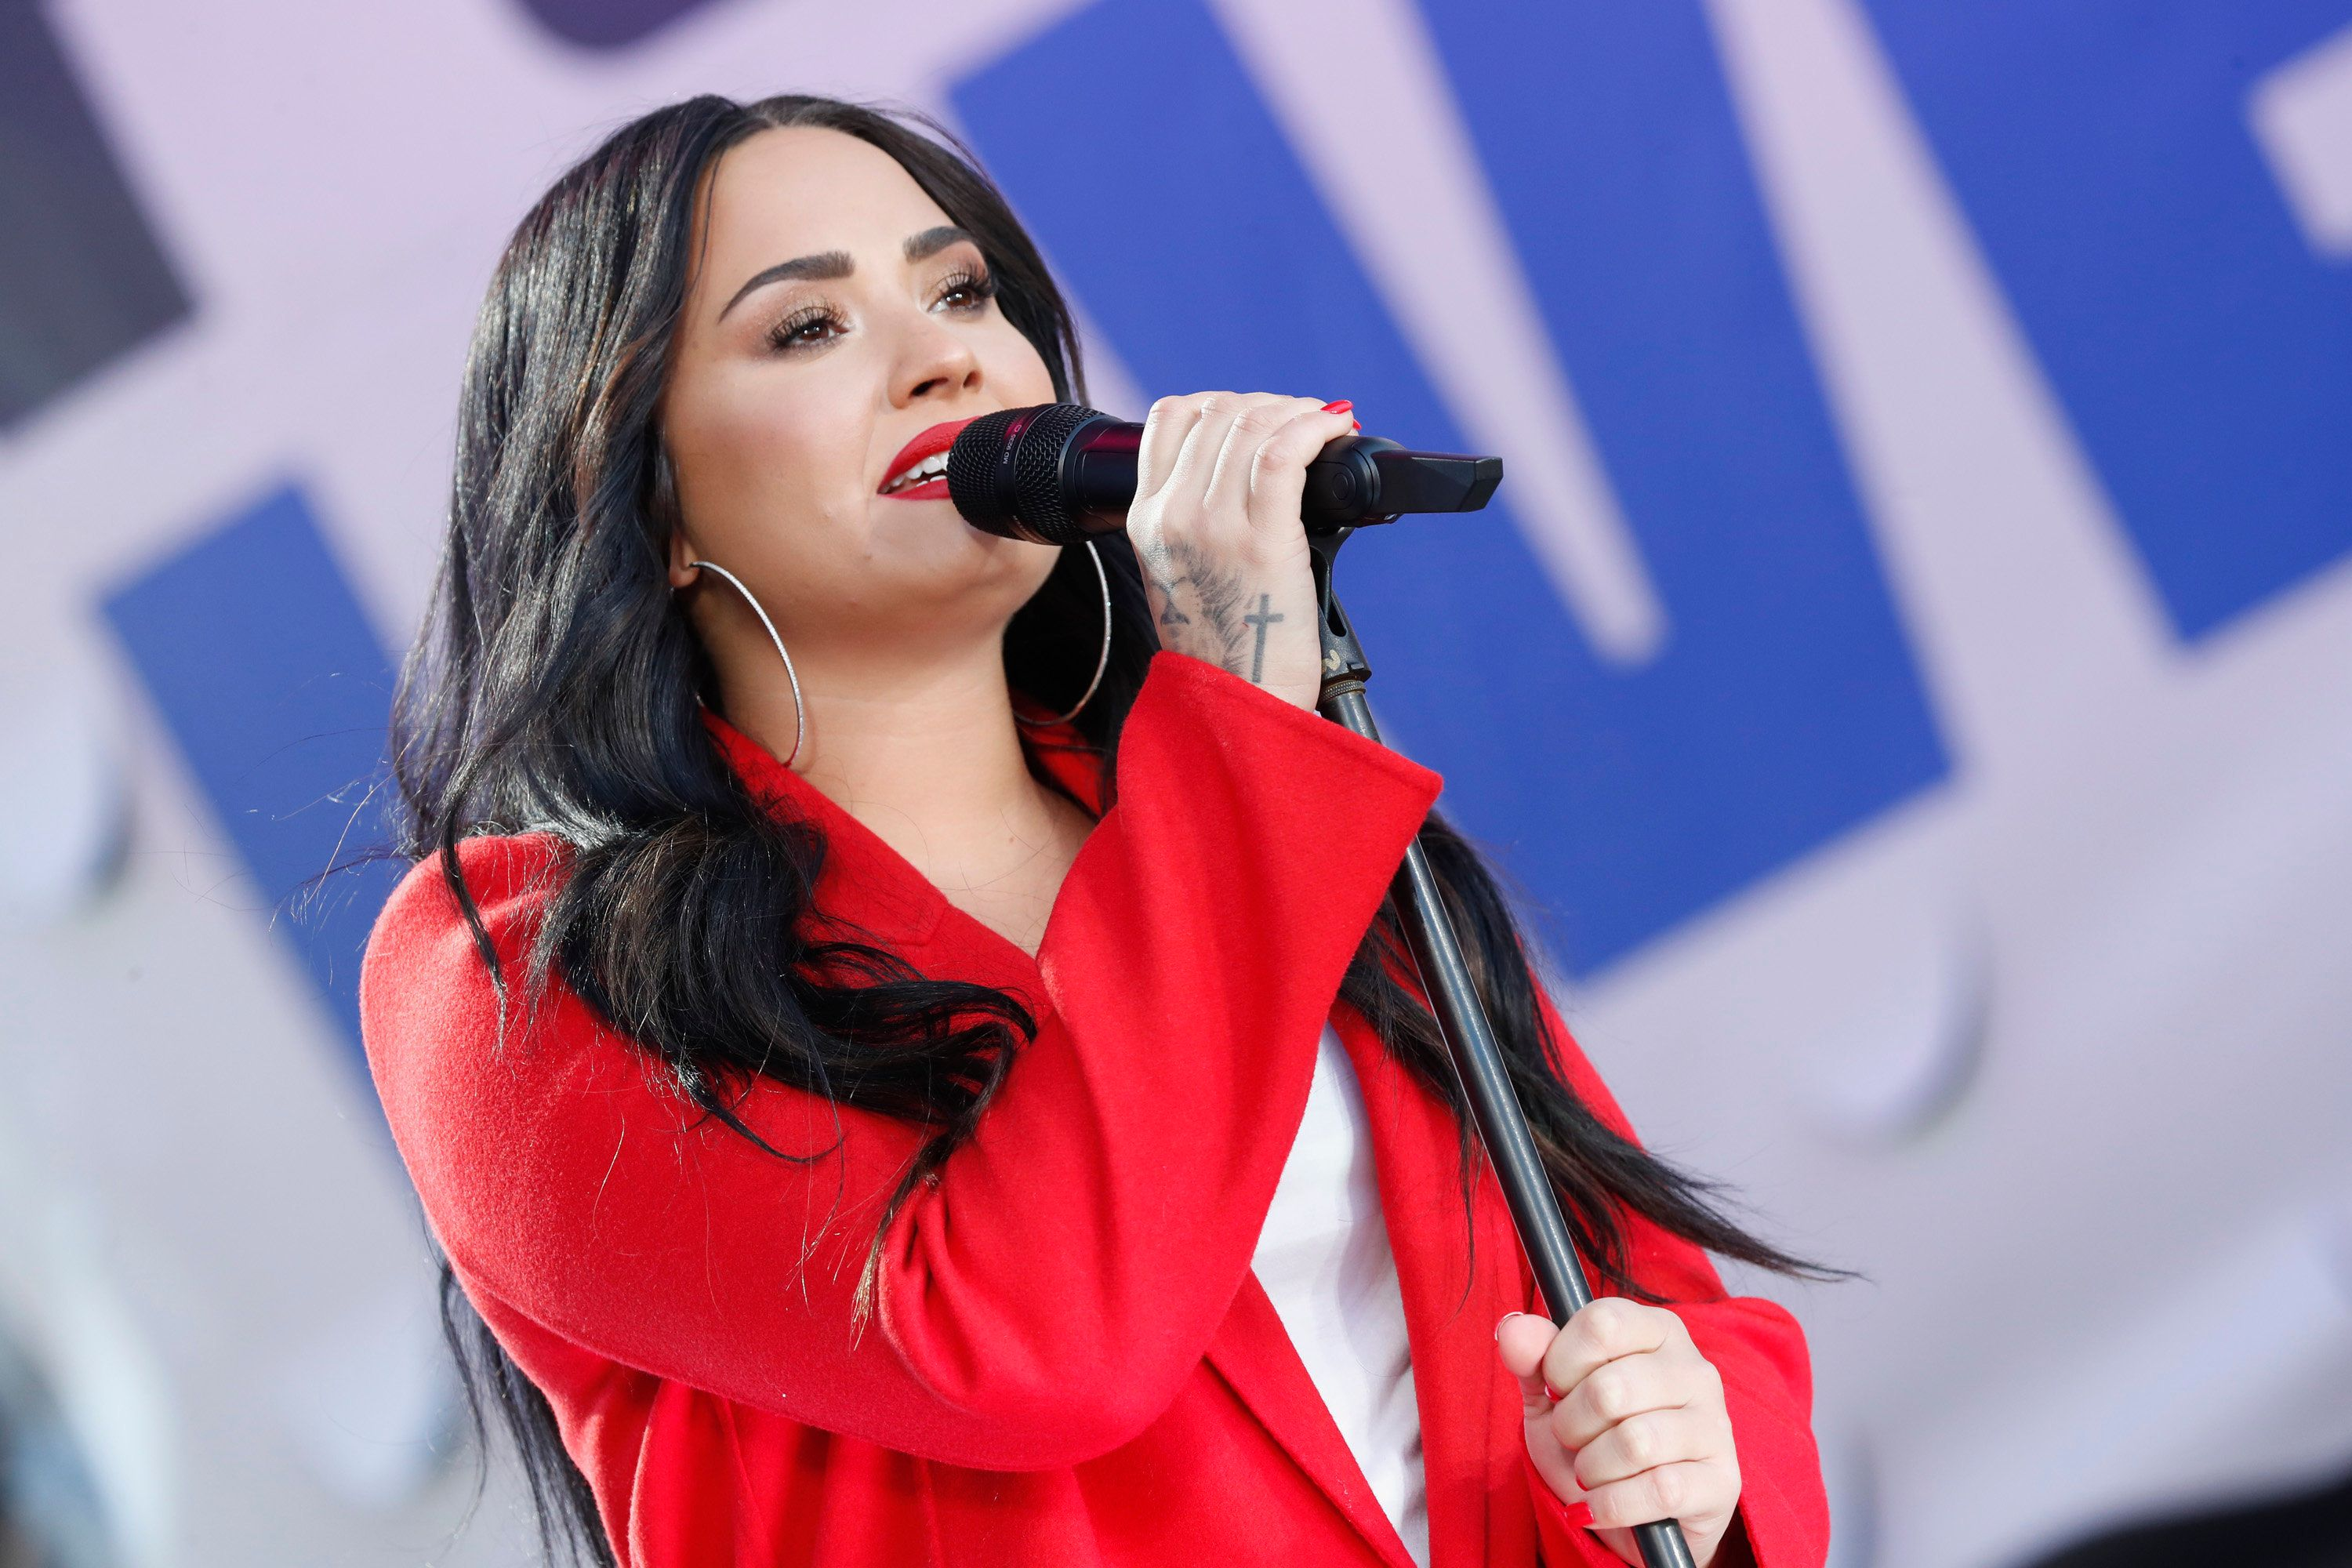 Demi Lovato performs at March for Our Lives on March 24in Washington, D.C. The artist has long been candid about her ex